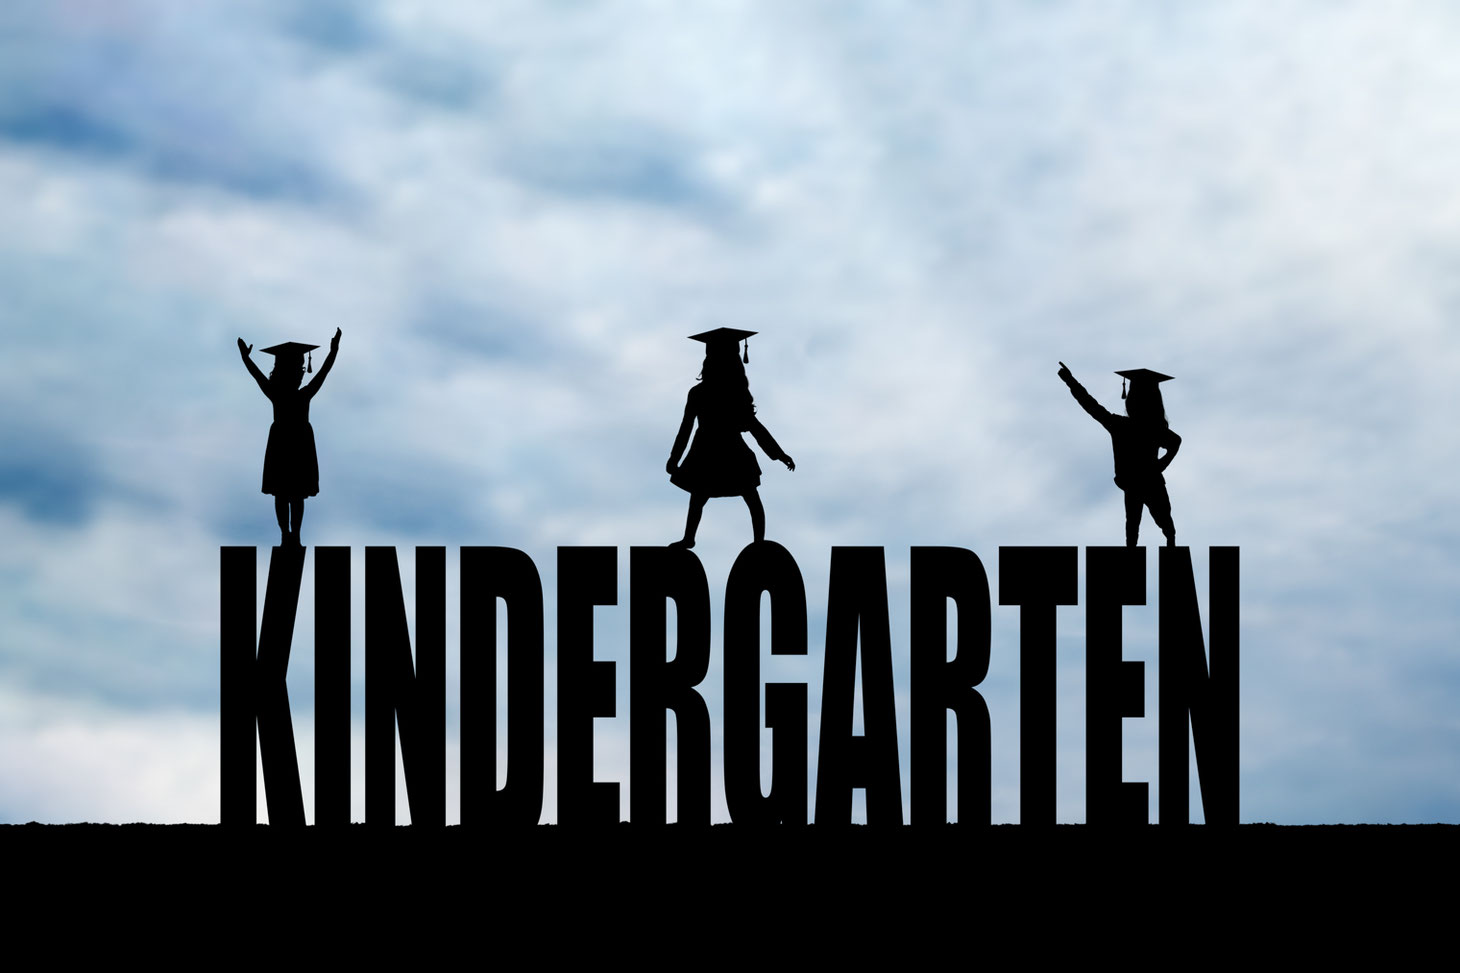 silhouettes of 3 girls with grad caps in front of a blue sky on top of the letters KINDERGARTEN